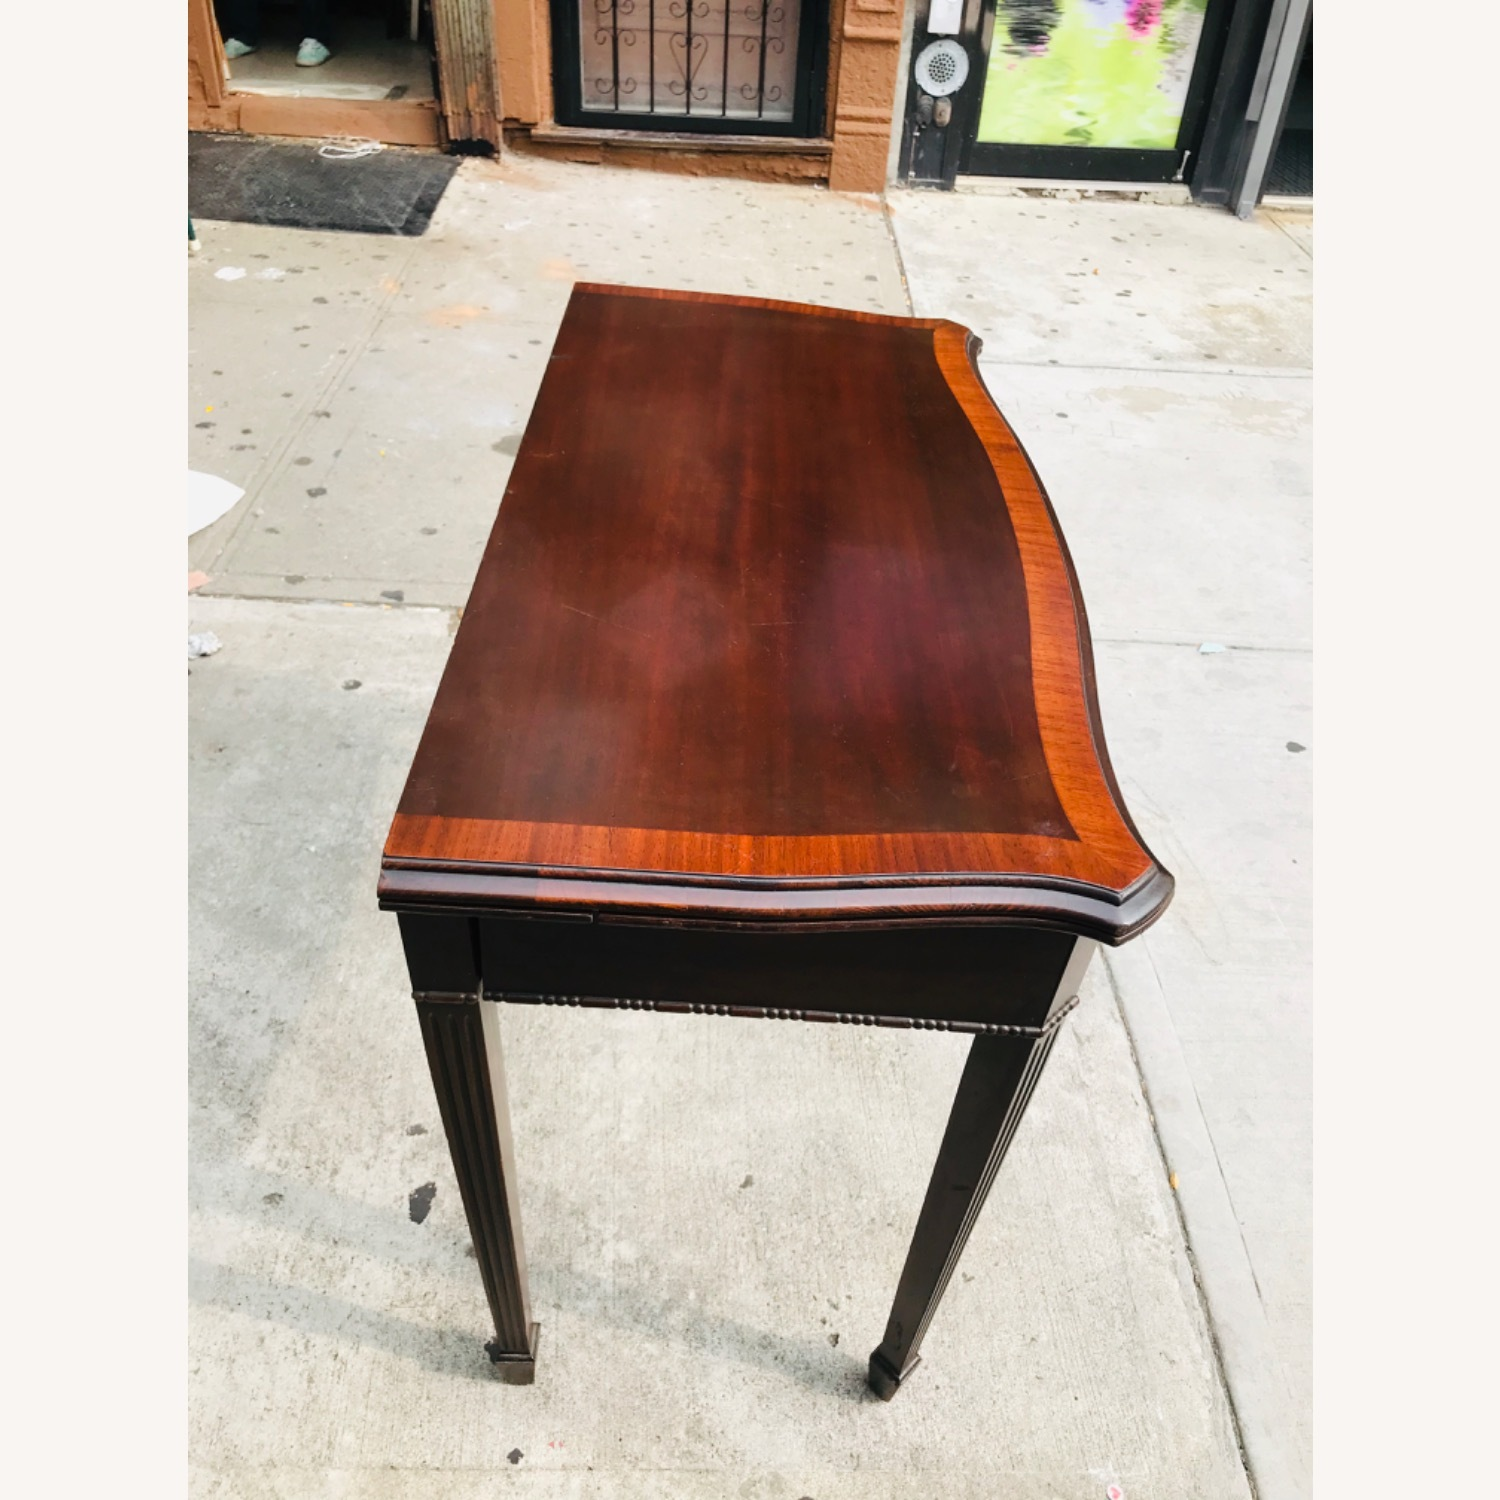 Antique 1920s Mahogany Table w/3 Leaves  - image-9